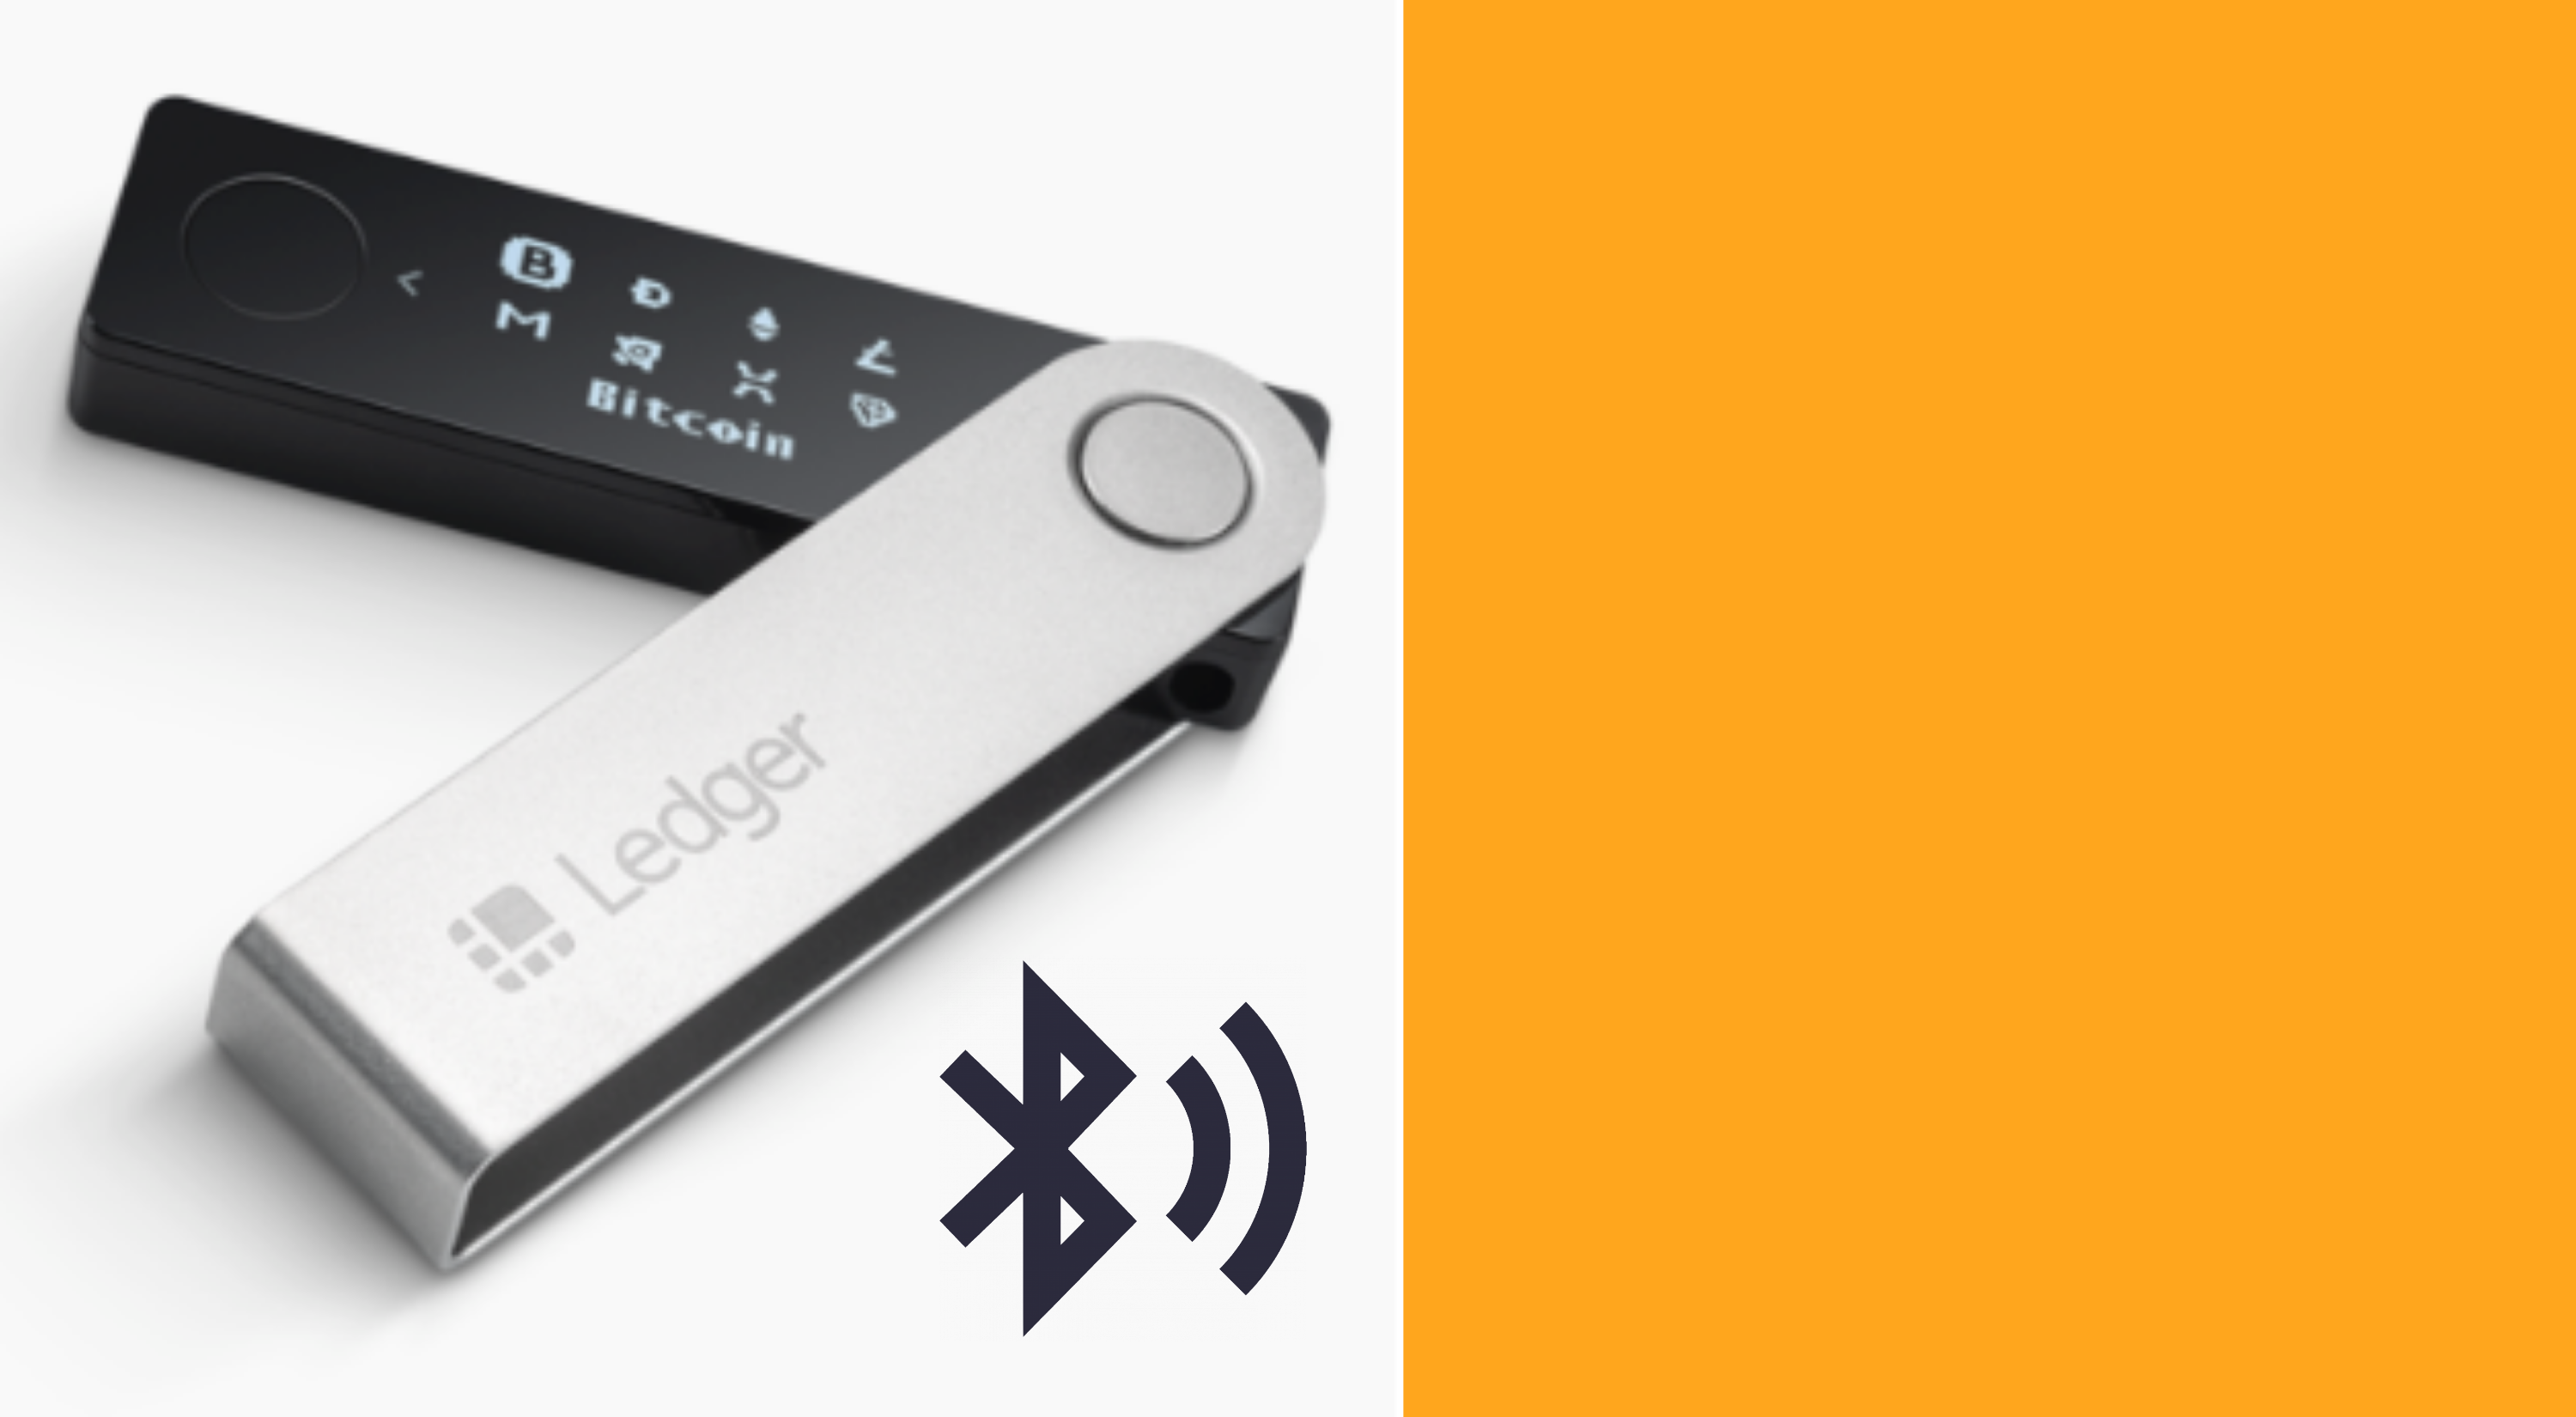 Ledger Introduces a New Bluetooth-enabled Hardware Wallet